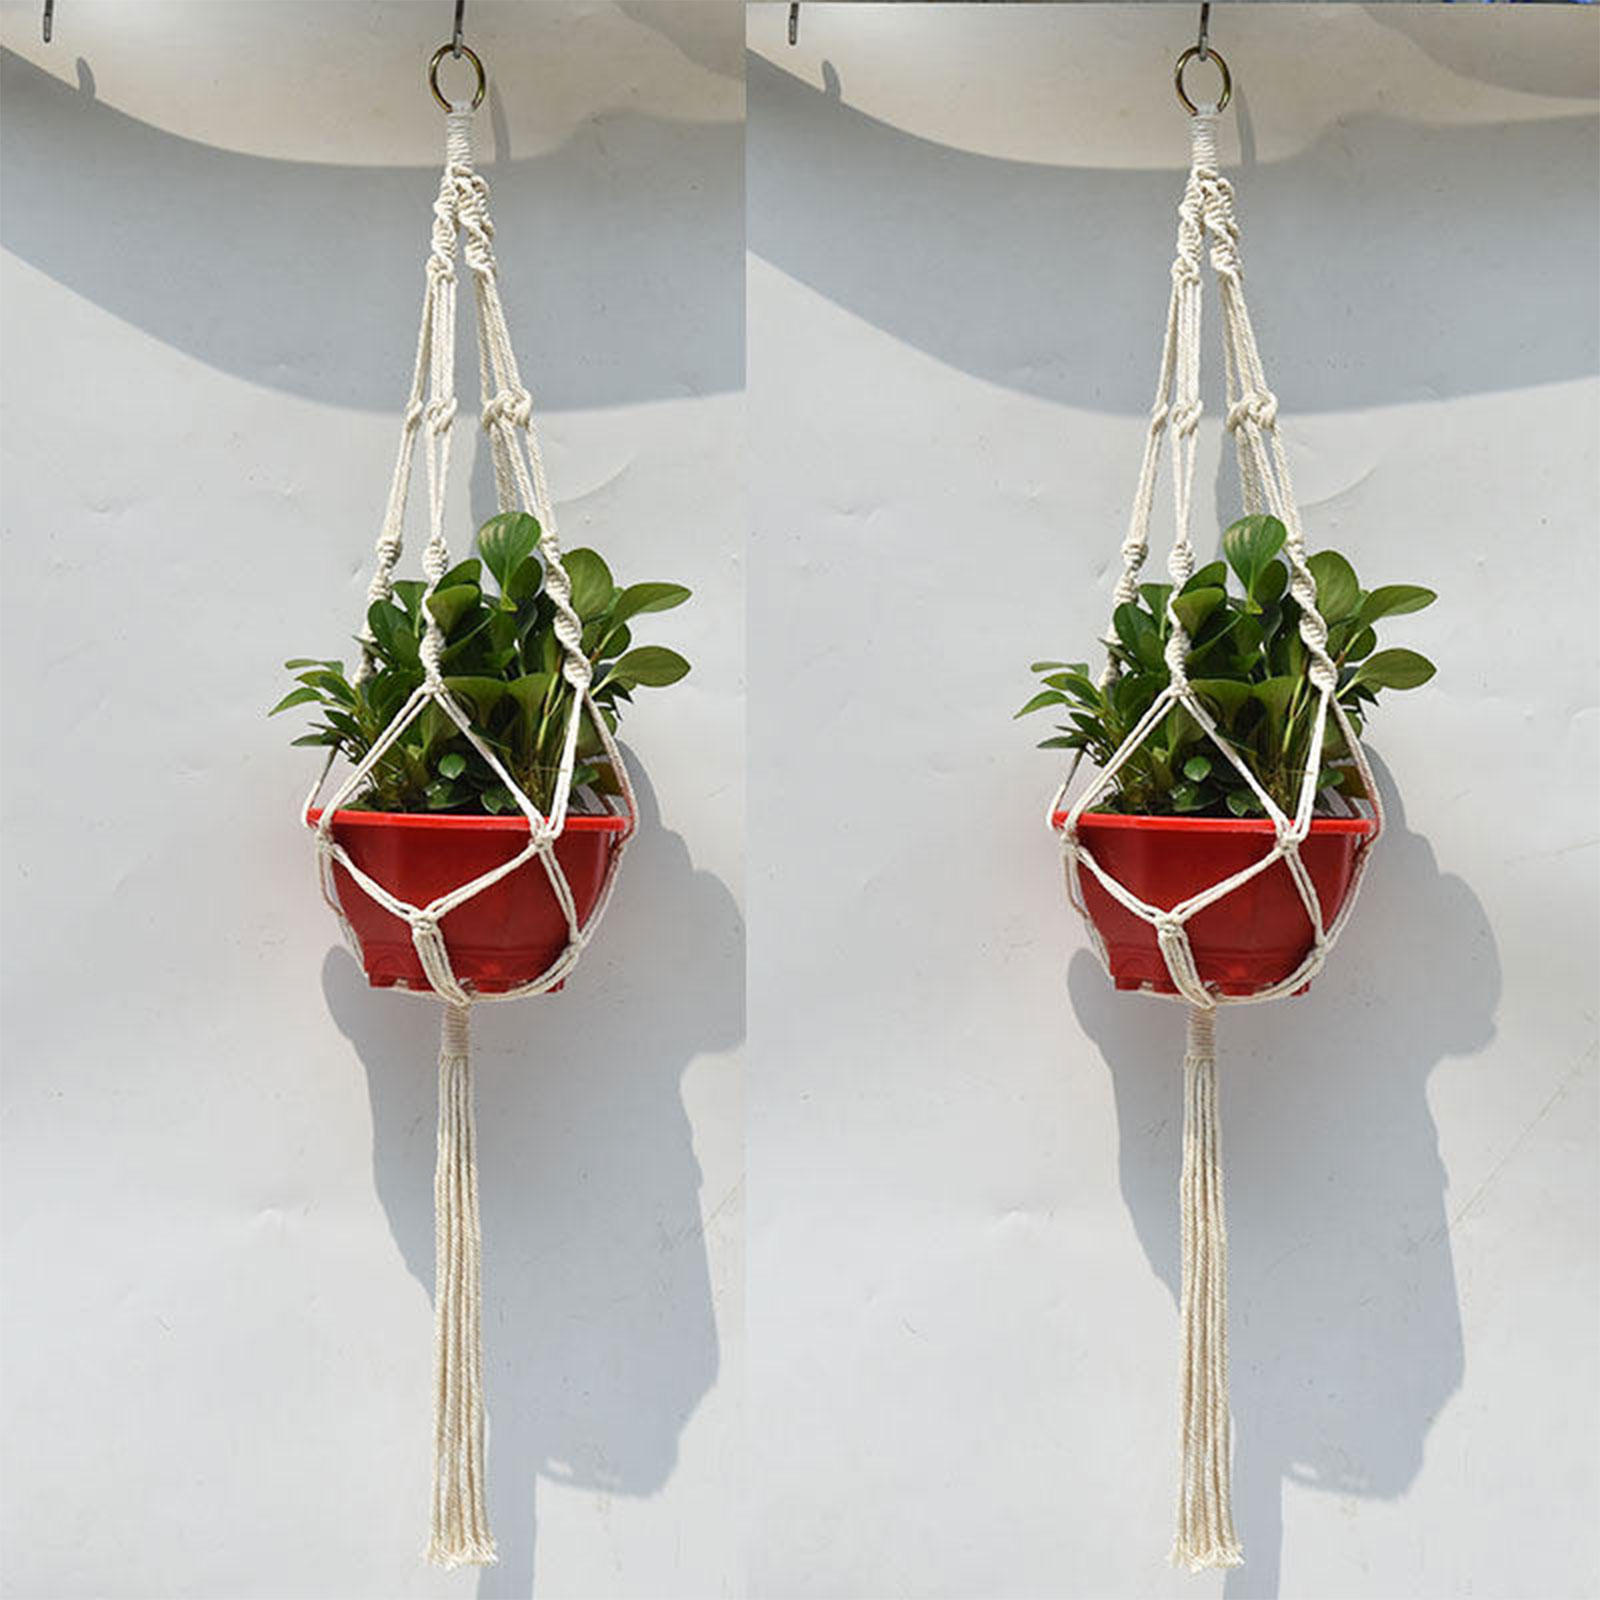 2 Pack Macrame Plant Hangers, Hanging Holder for Plant ... on Decorative Wall Sconces For Flowers Hanging Baskets Delivery id=14469